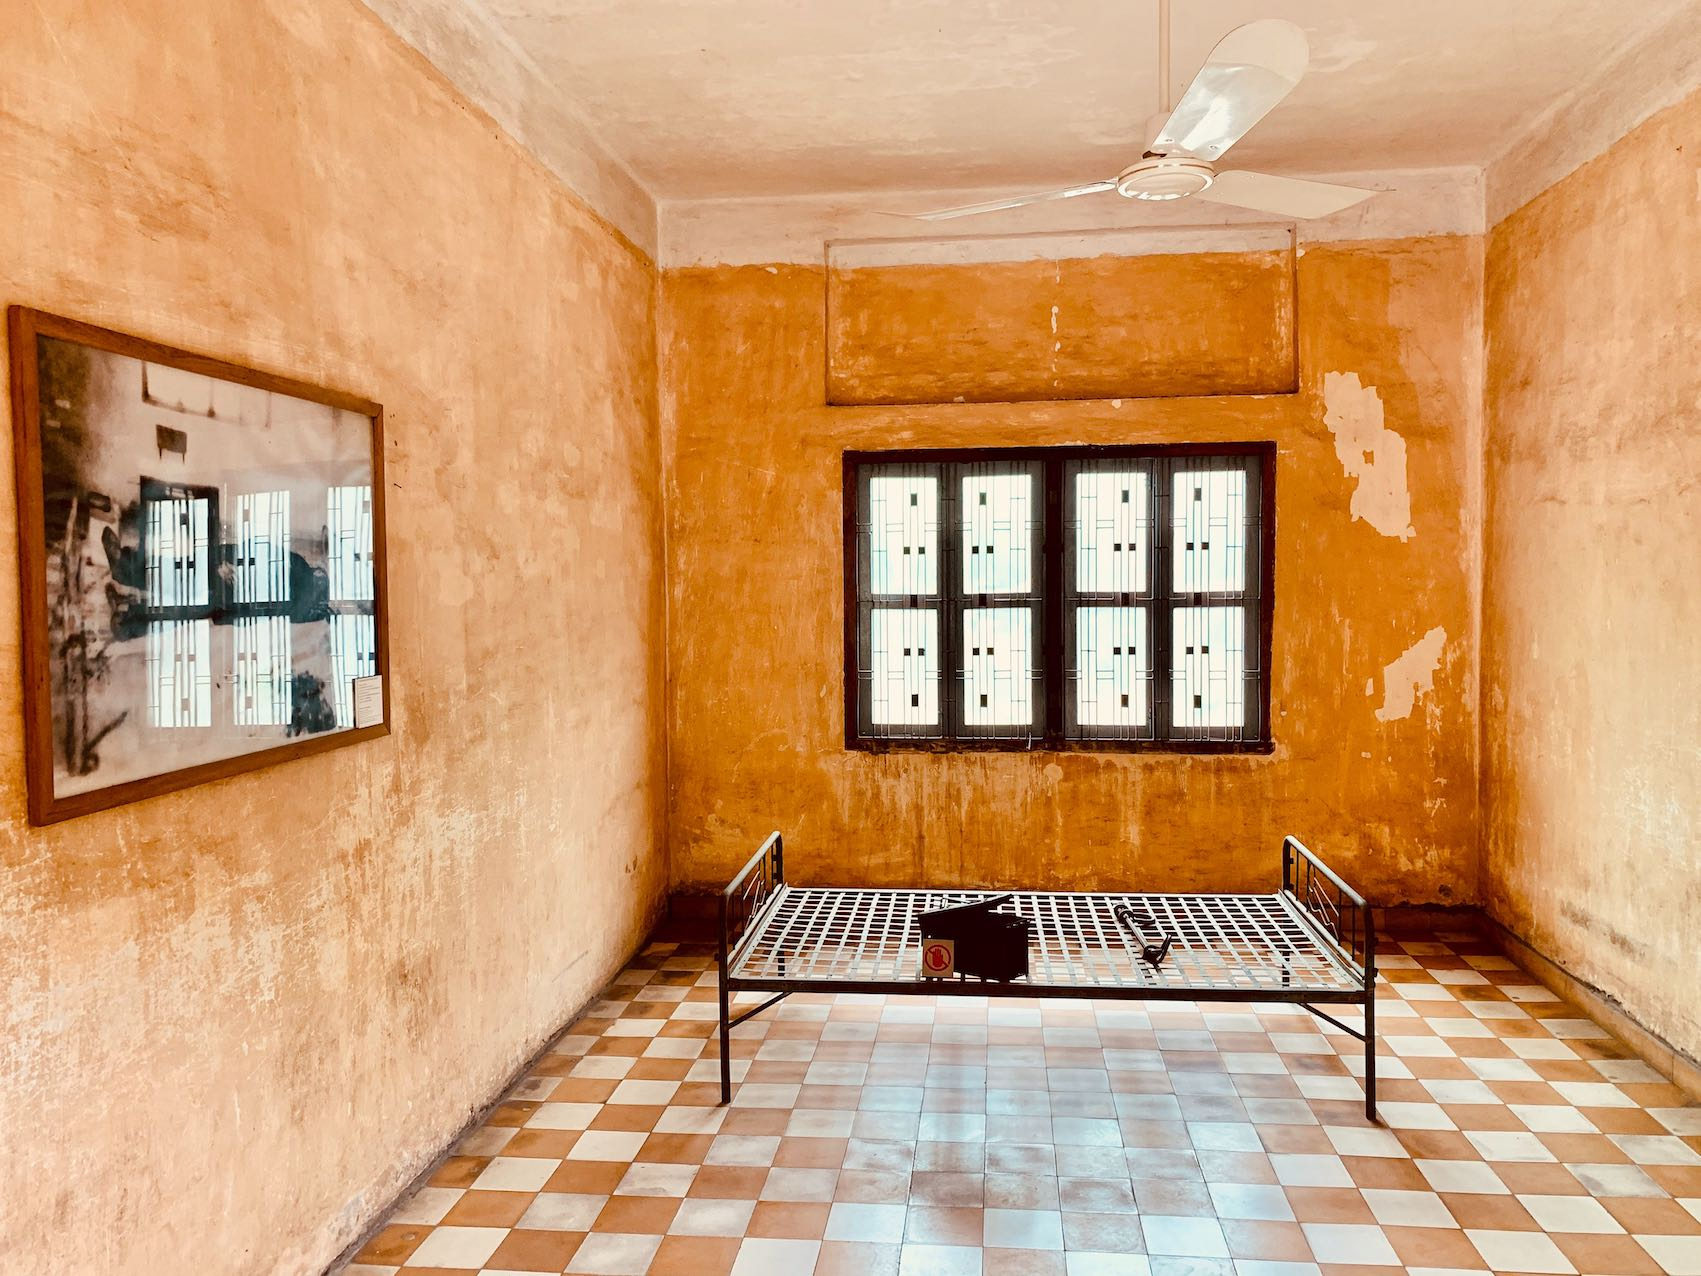 Torture room Building A Tuol Sleng Genocide Museum